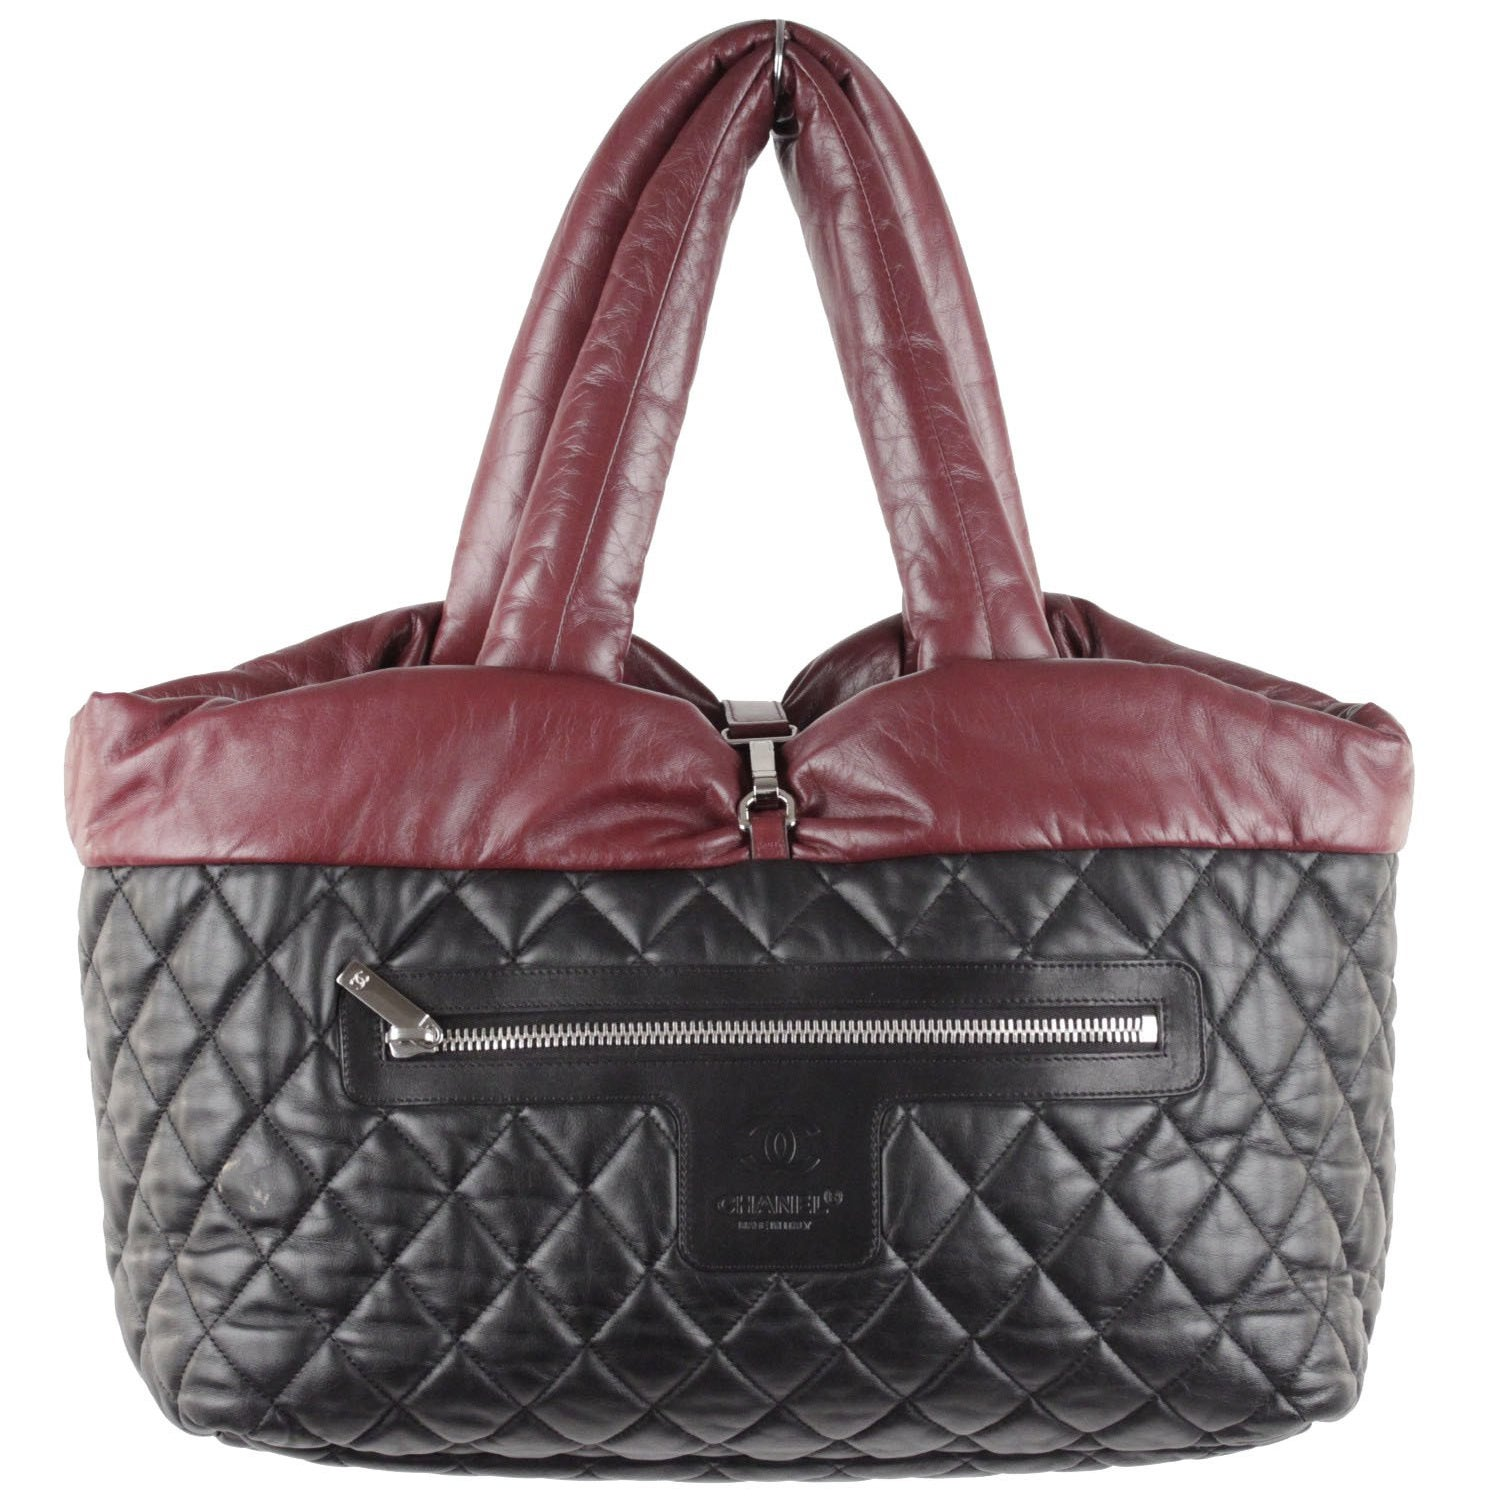 85c0761452f9f0 Chanel Black/Burgundy Reversible Leather Coco Cocoon Tote Handbag For Sale  at 1stdibs